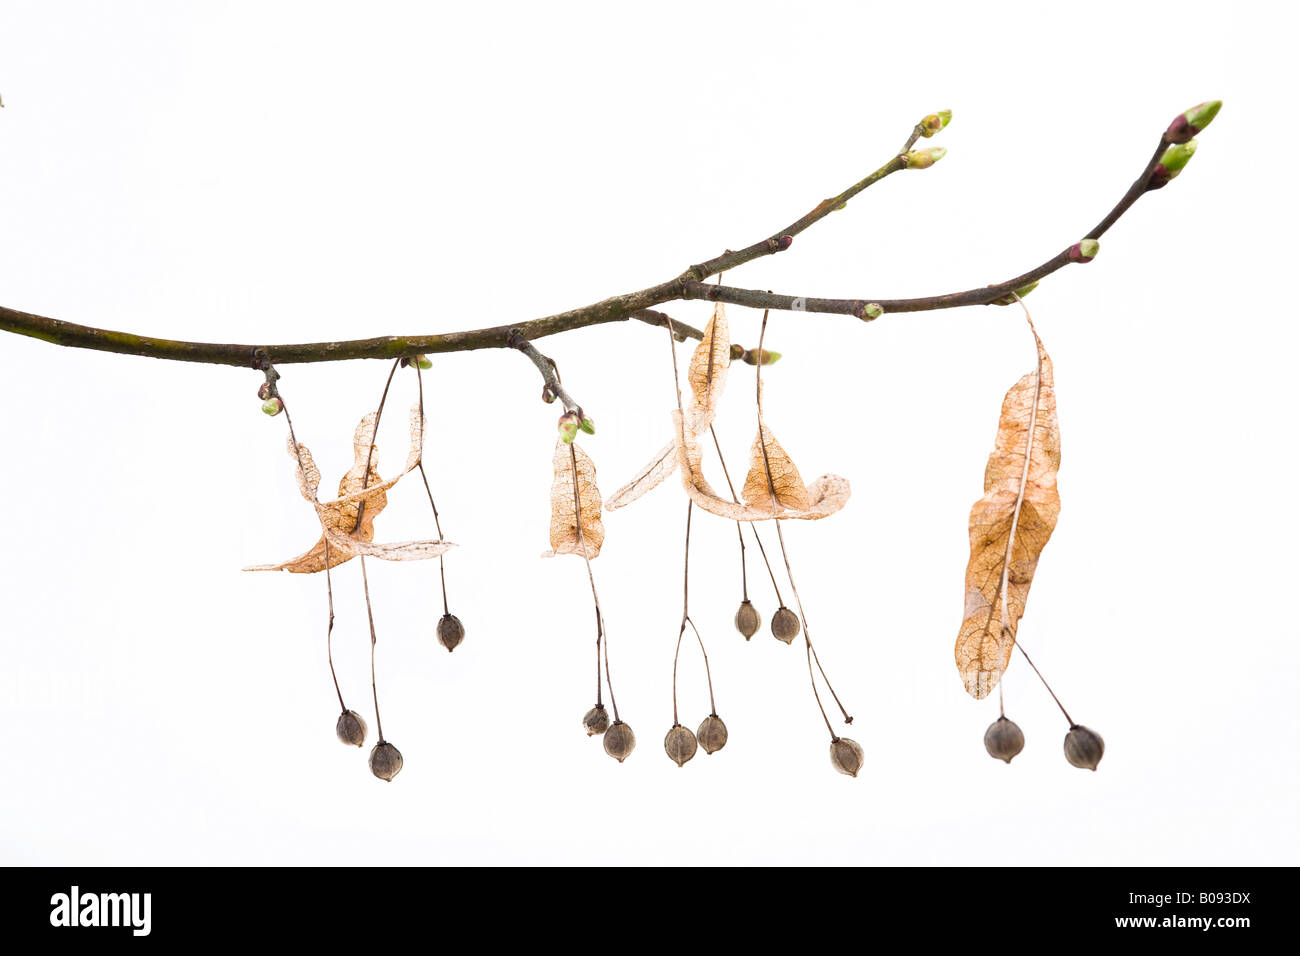 Linden or Lime tree branch in springtime (Tilia) - Stock Image